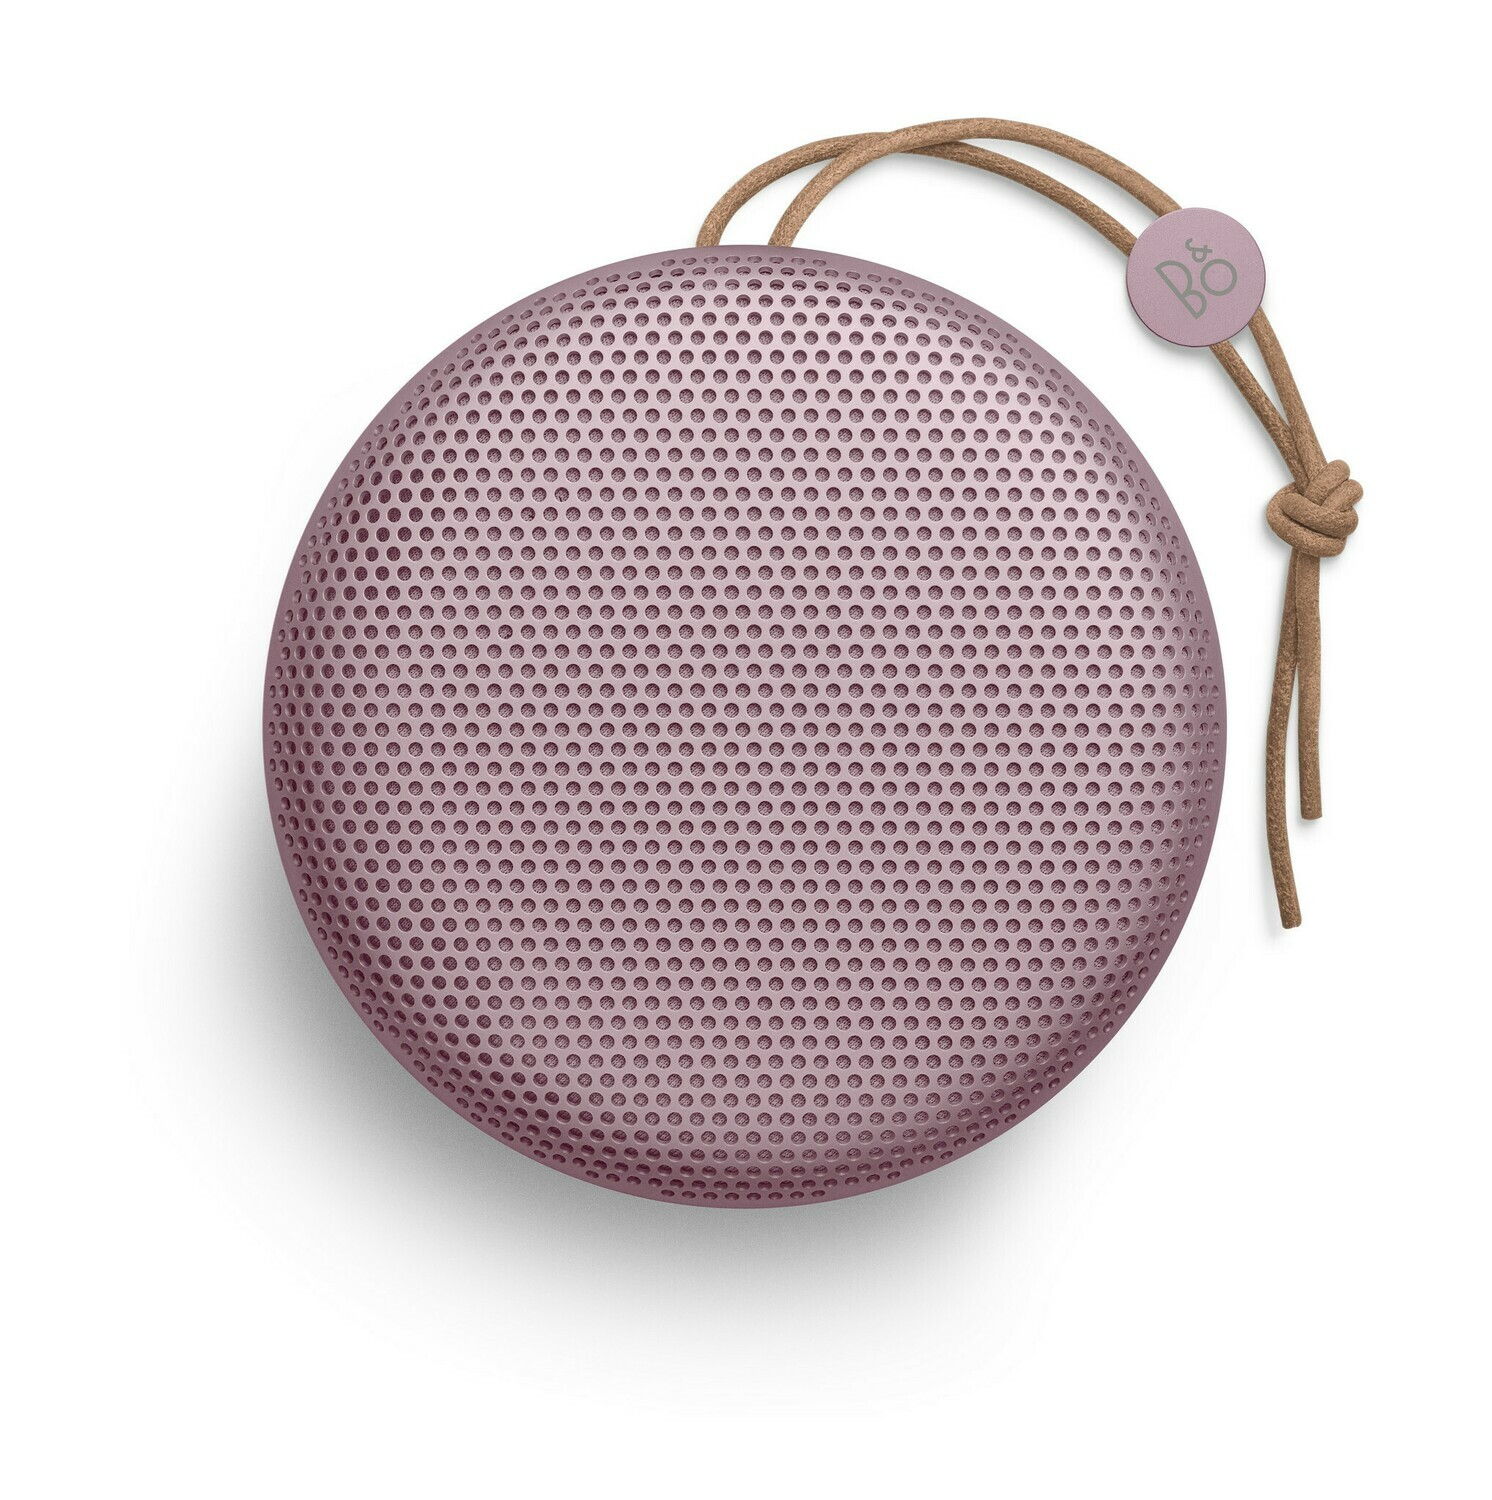 Beoplay A1 Peony AW19 Limitierte Edition